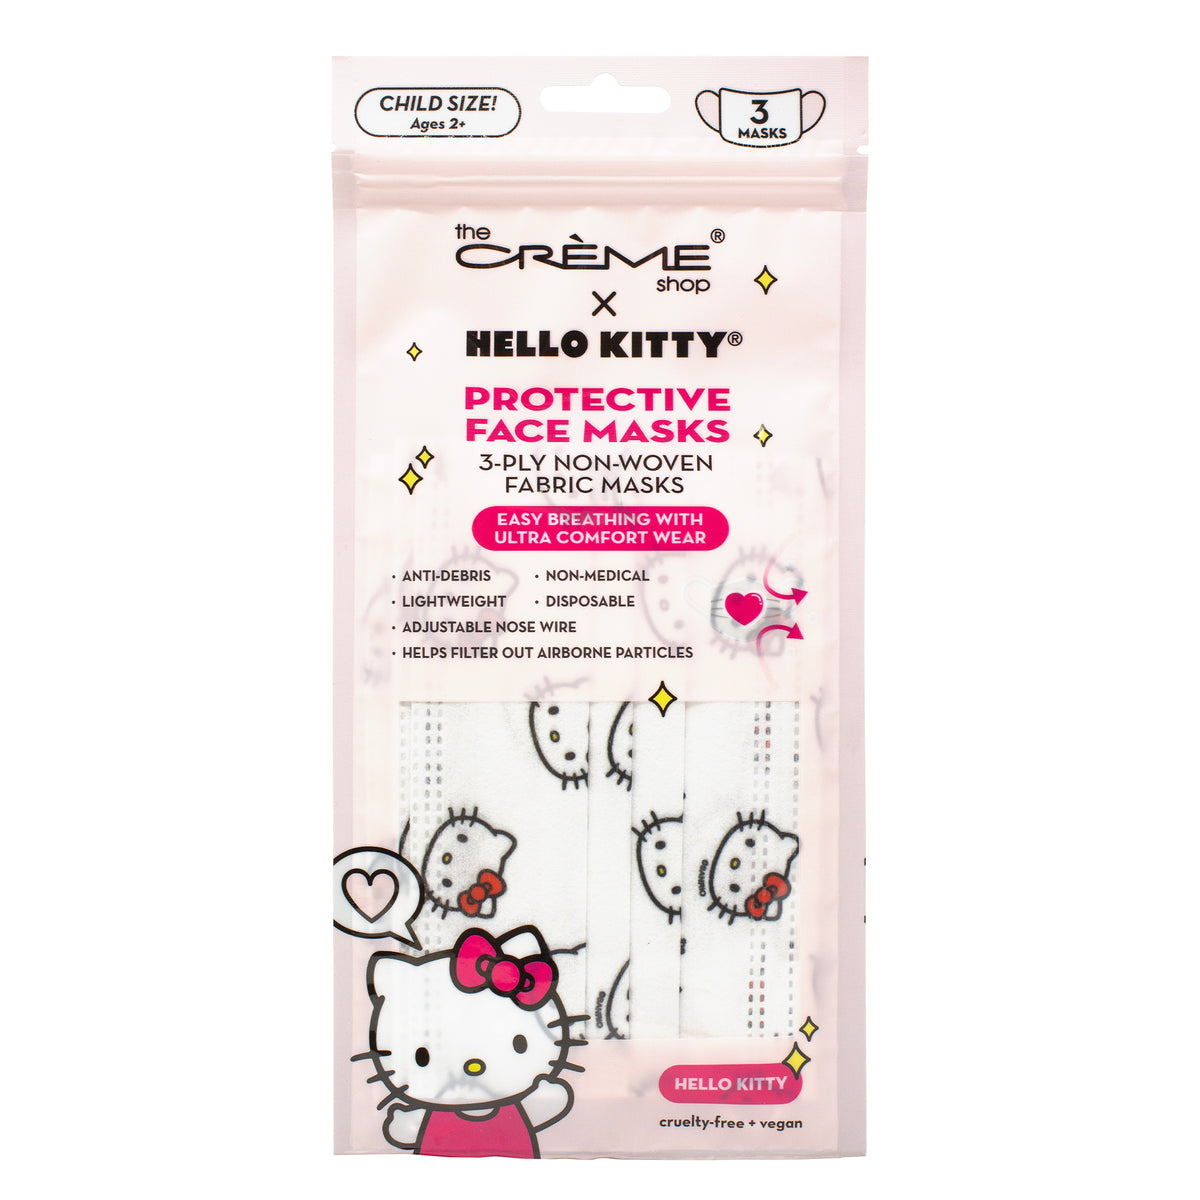 The Crème Shop x Hello Kitty 3-Ply Disposable Face Masks Child